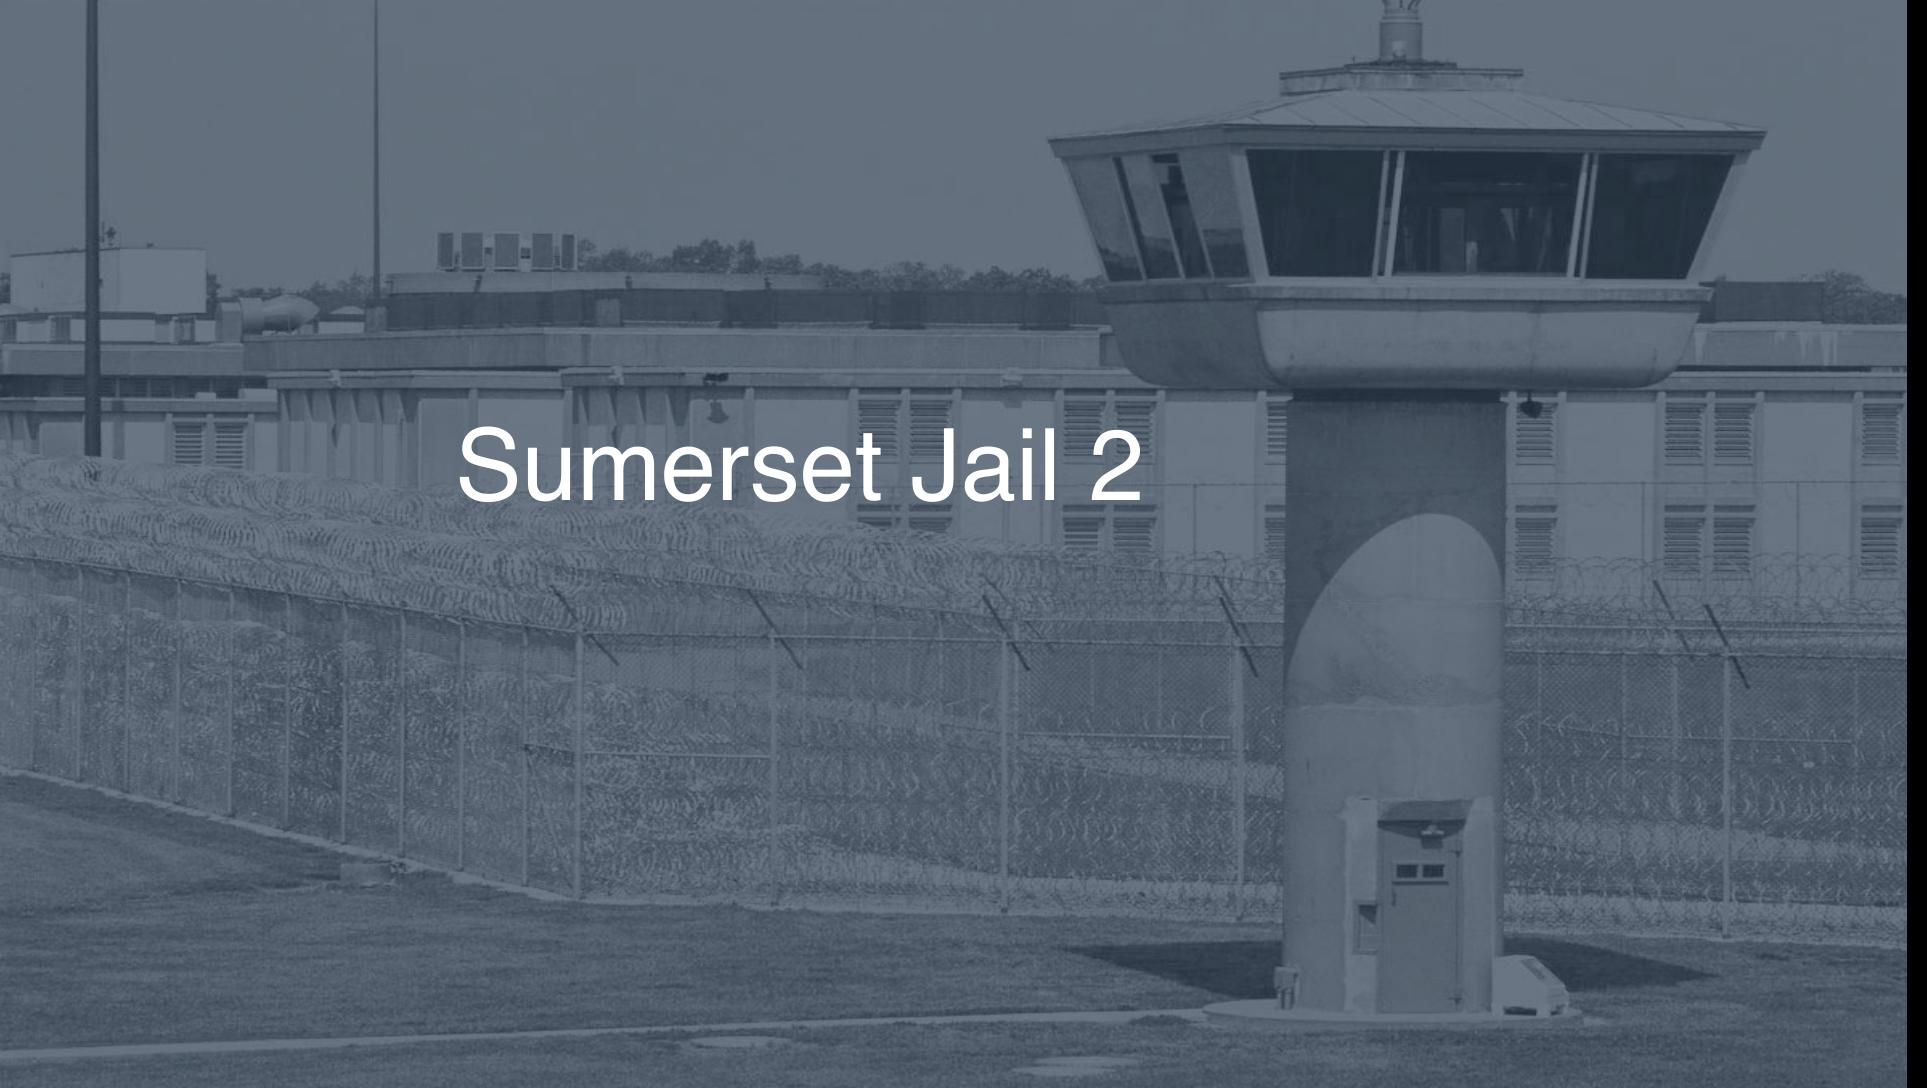 Sumerset Jail correctional facility picture